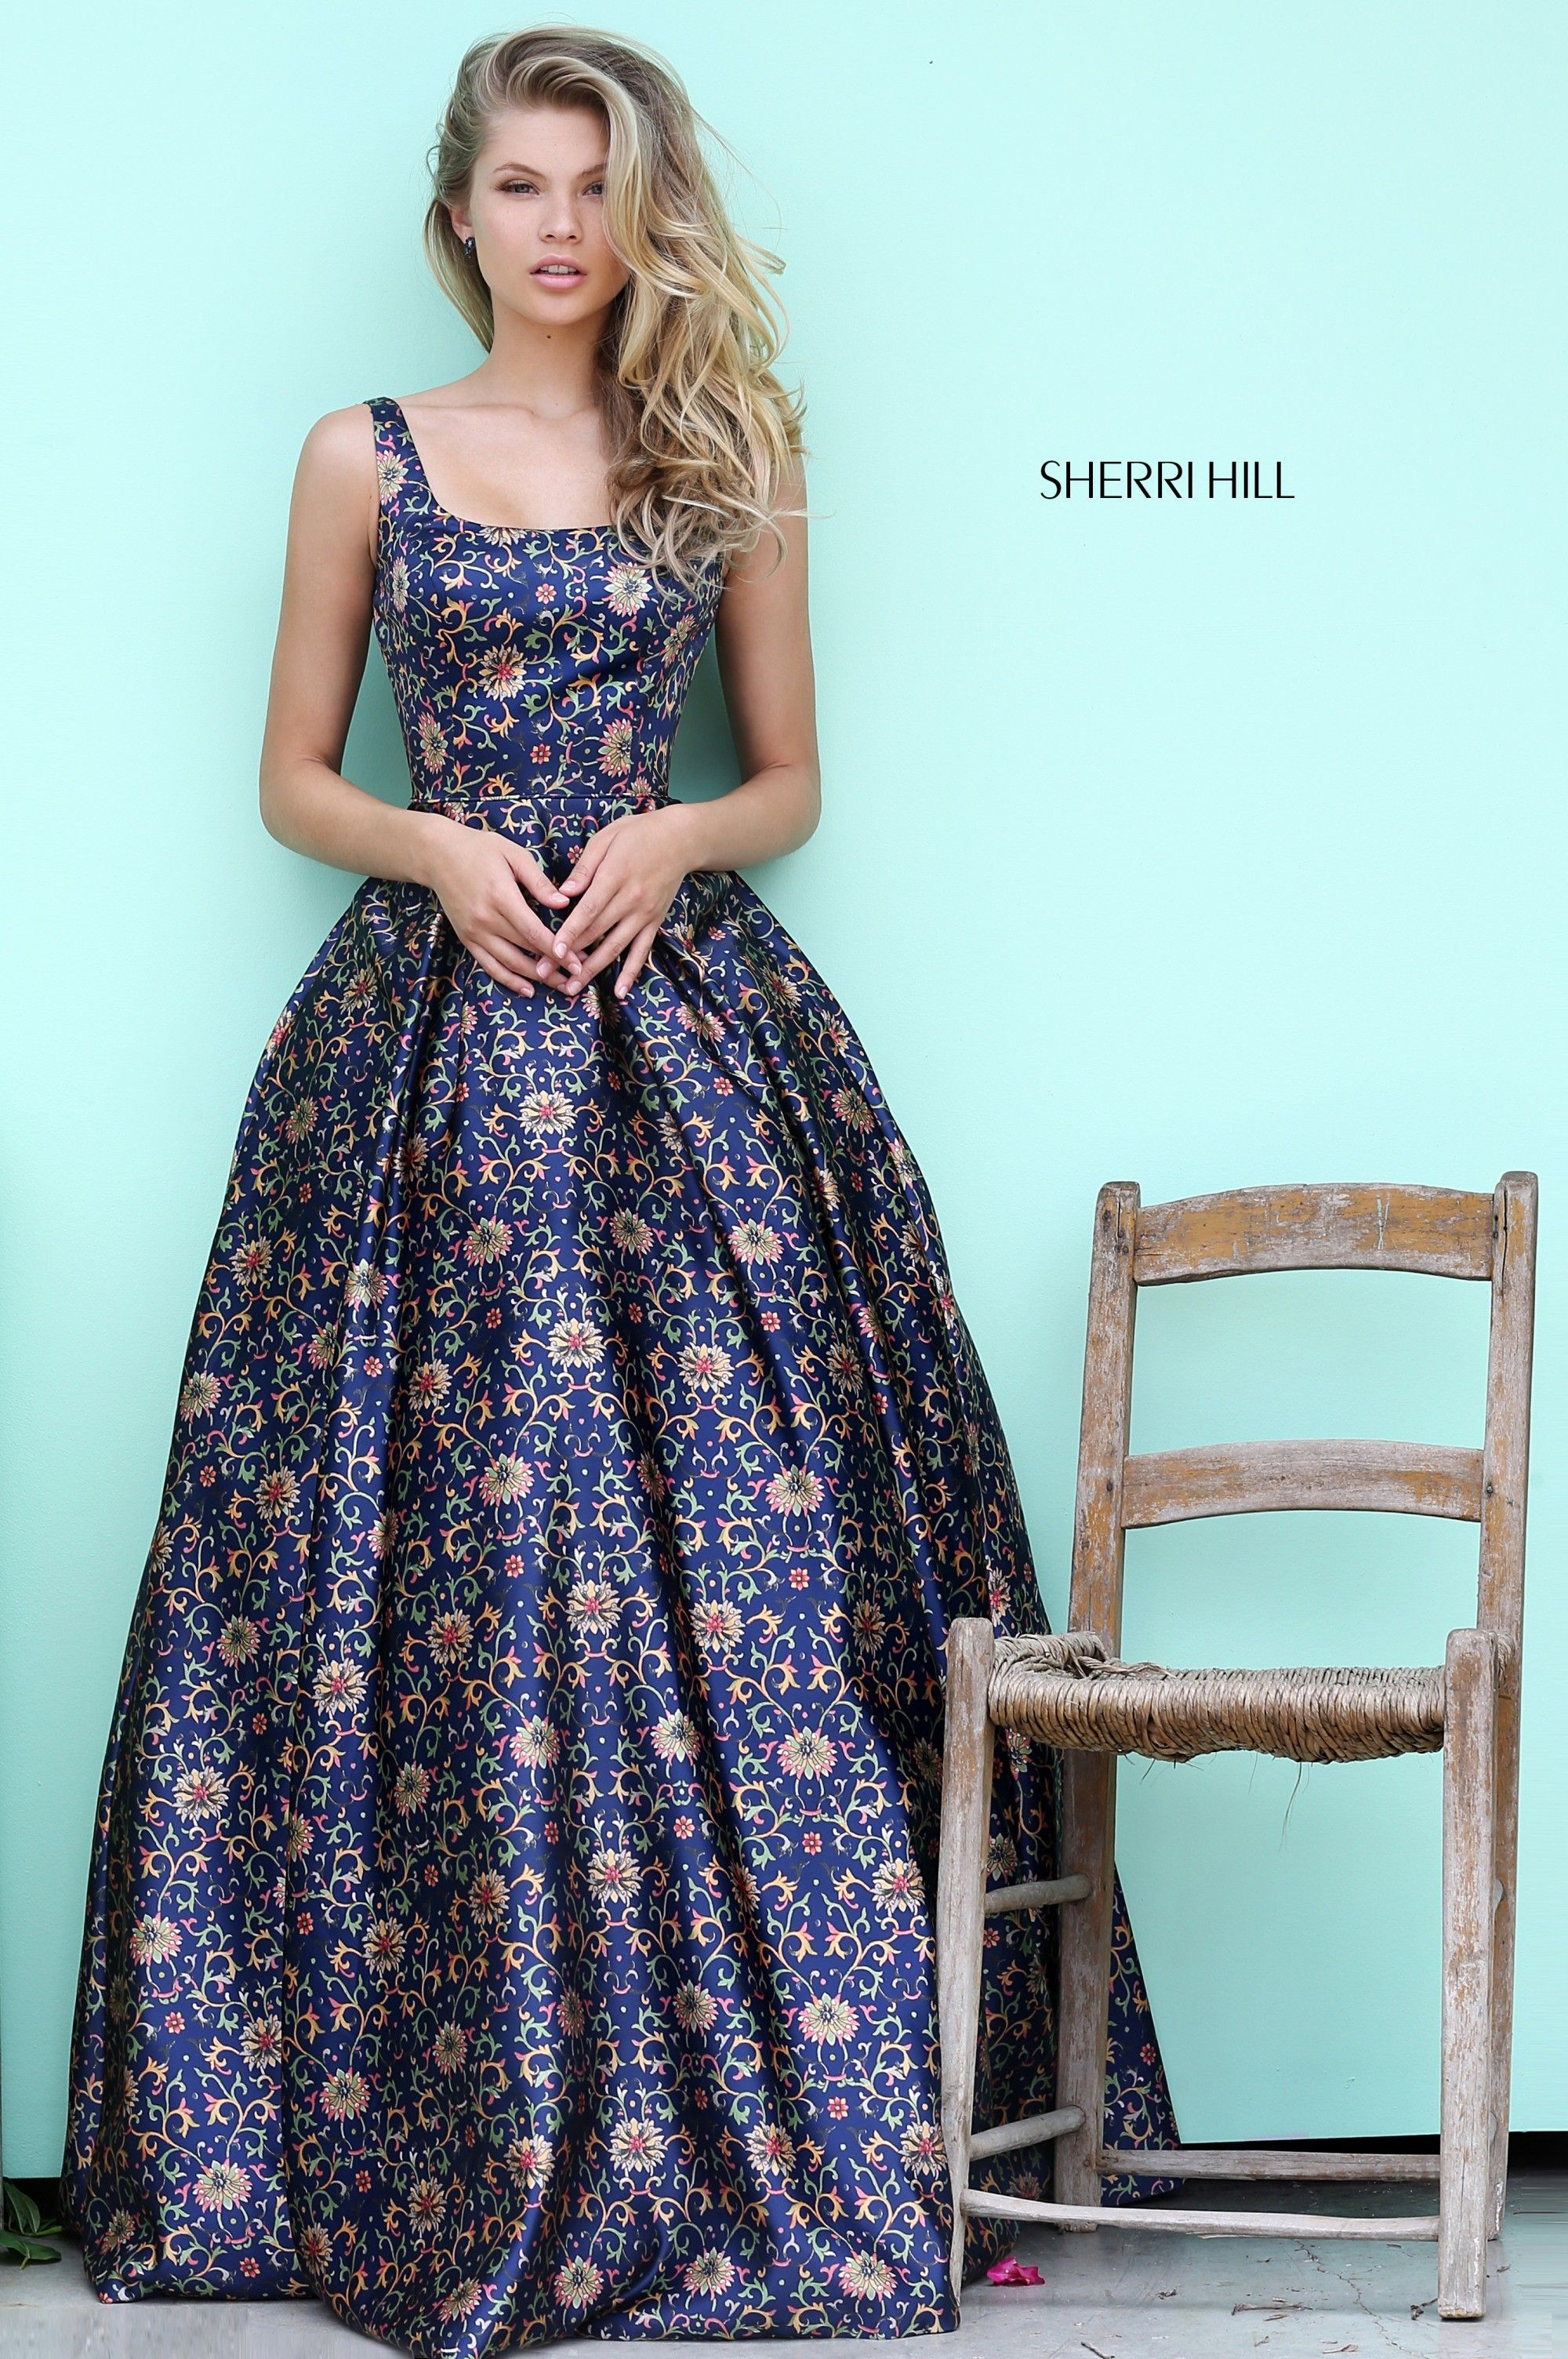 Sherri hill prom dress in fashion pinterest dresses